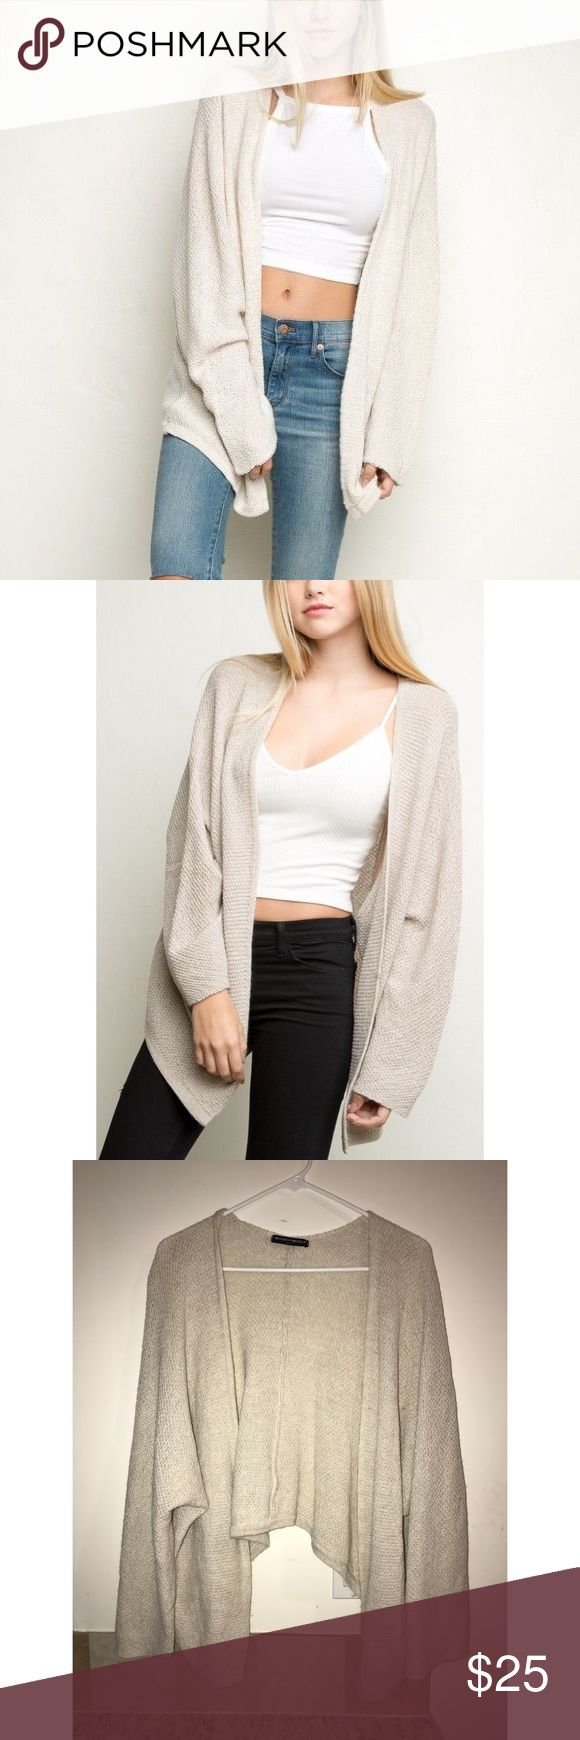 Brandy Melville Cardigan Soft and cozy 😍 it is an oversized small, so could fit over sizes just depends on how you like to fit. Brandy Melville Sweaters Cardigans